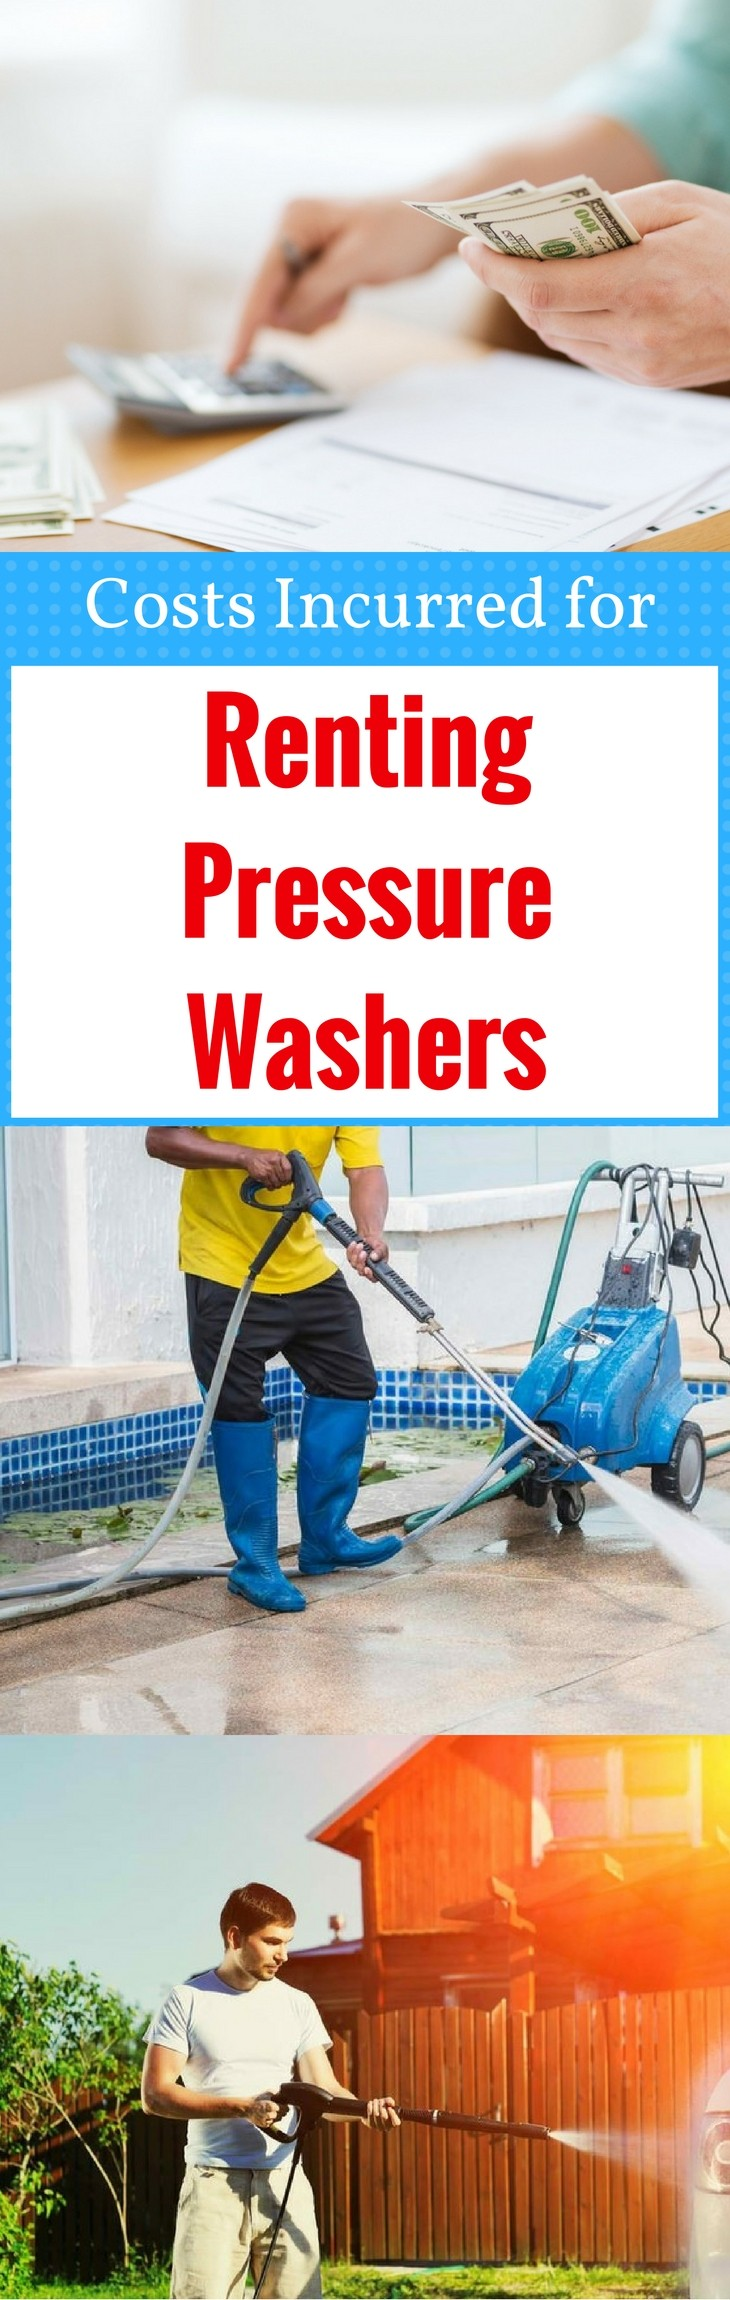 Costs Incurred for Renting Pressure Washers1